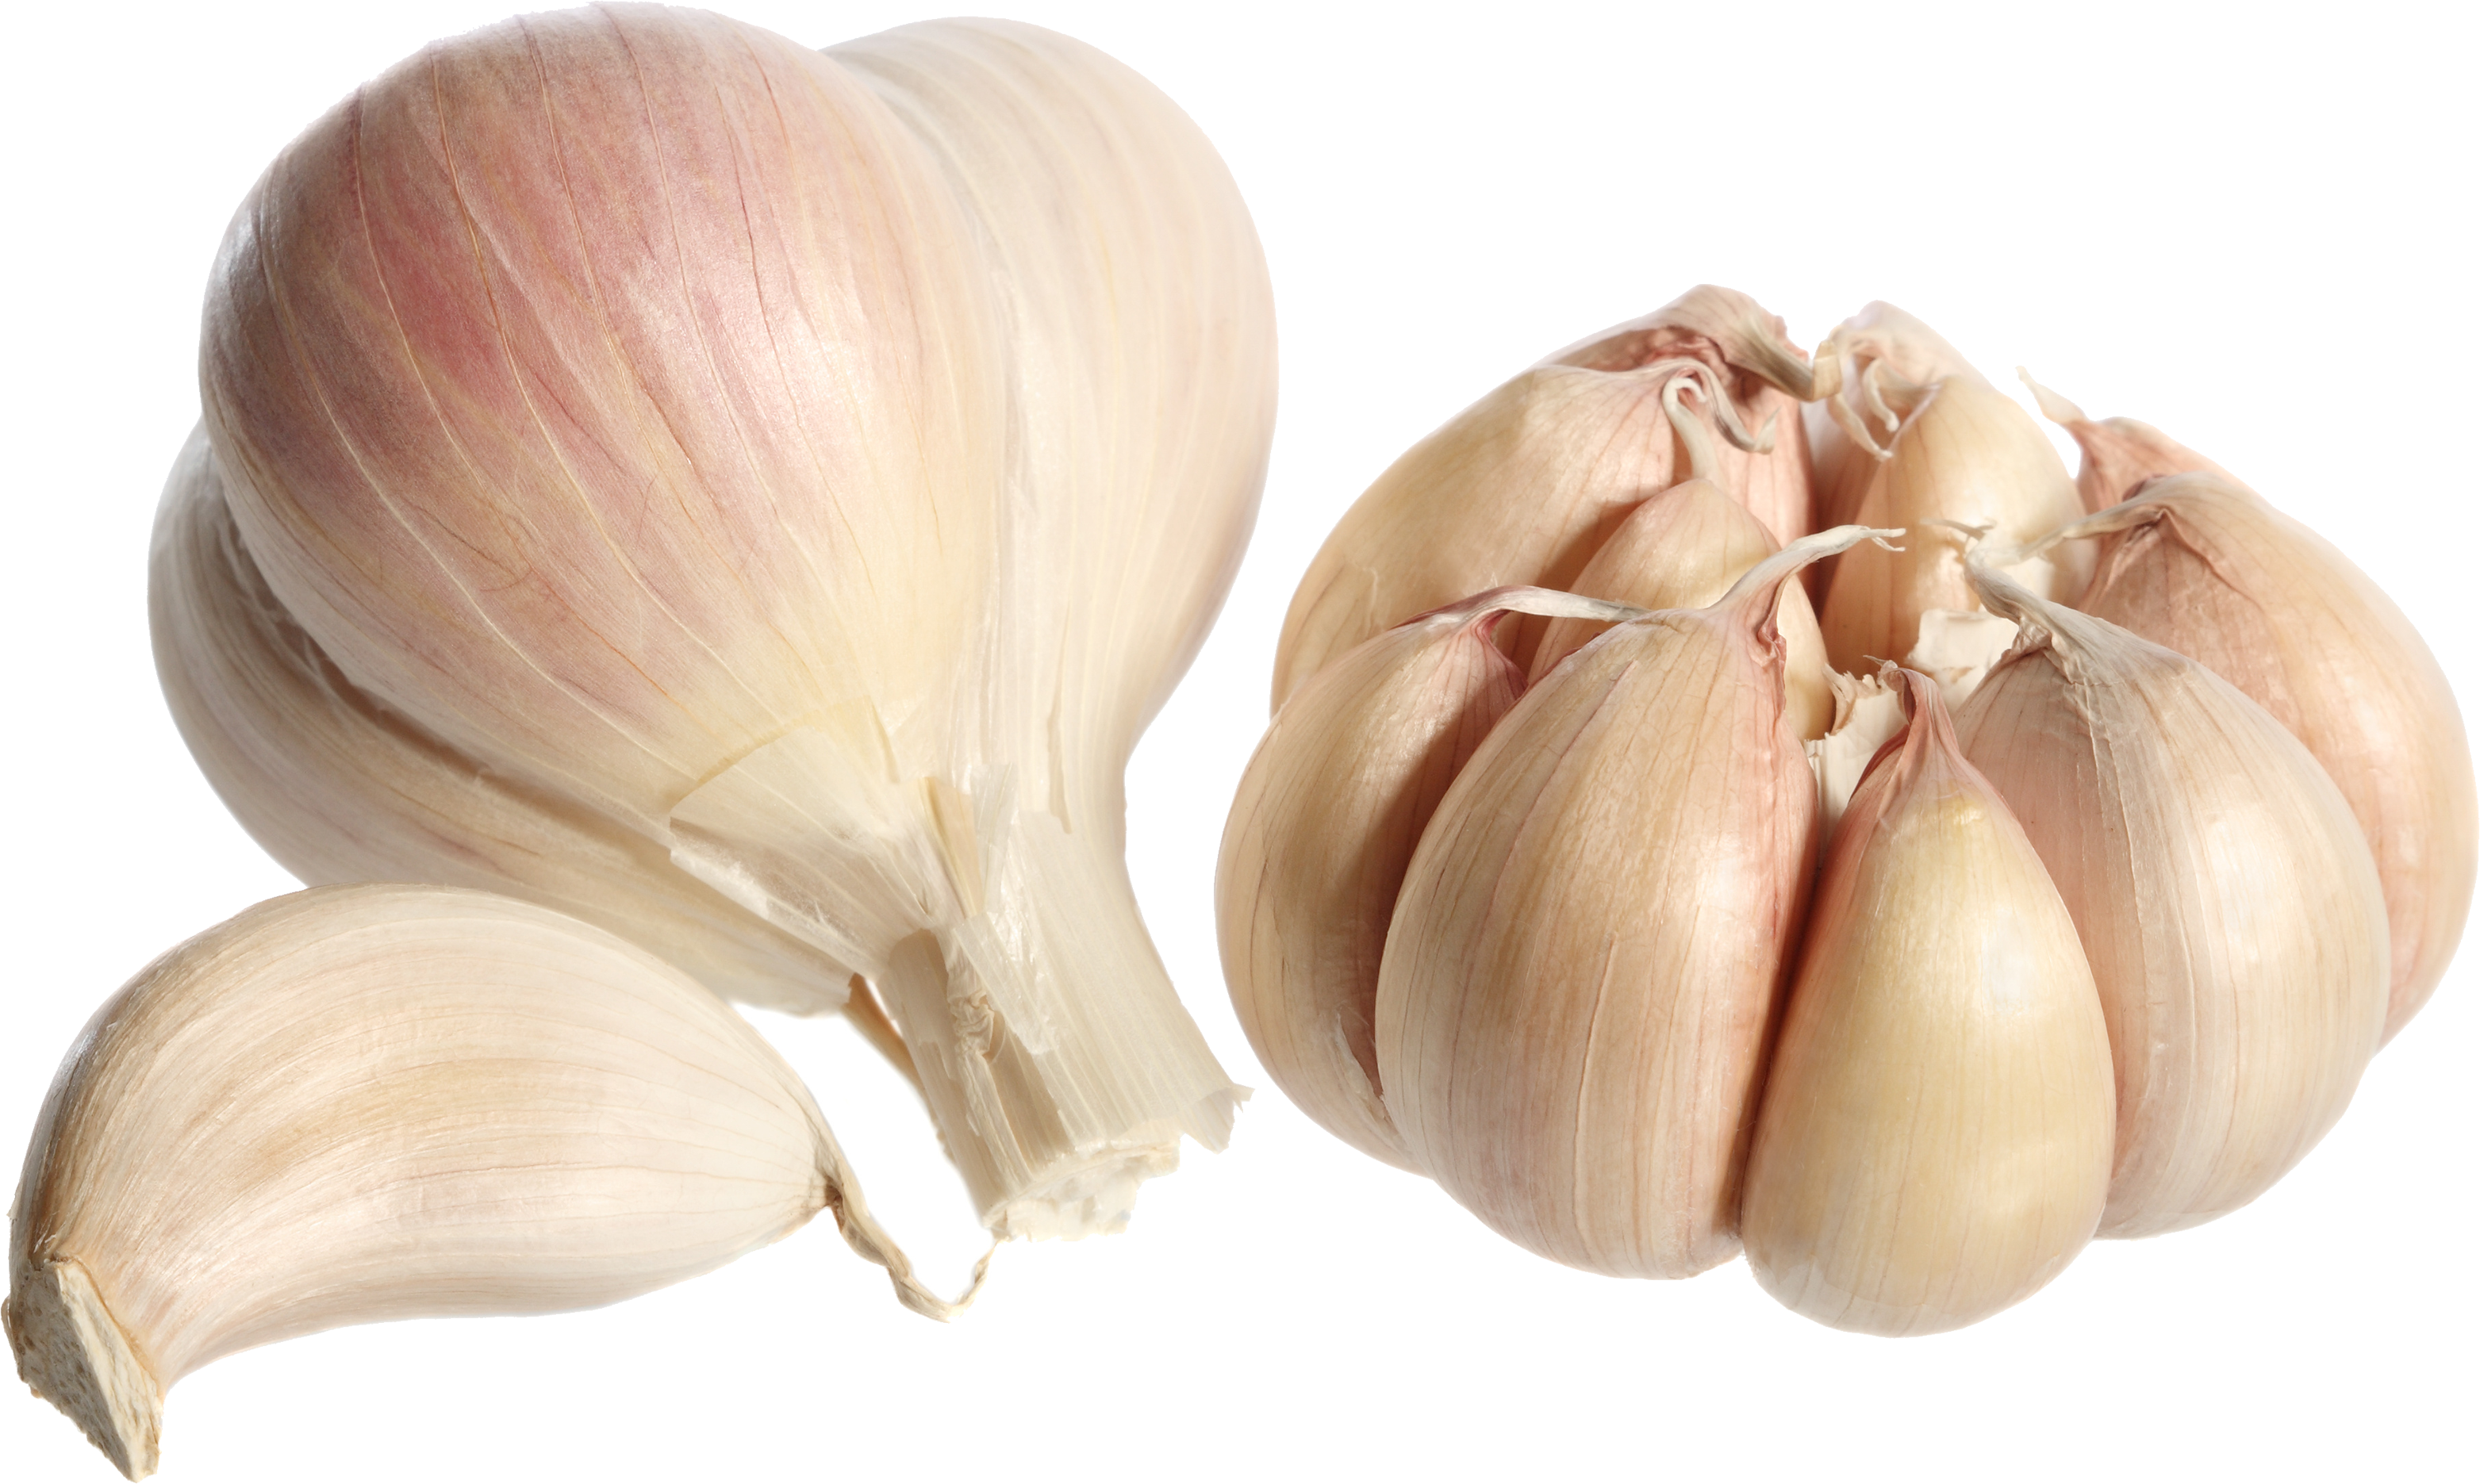 garlic png images for download crazypngm #25552